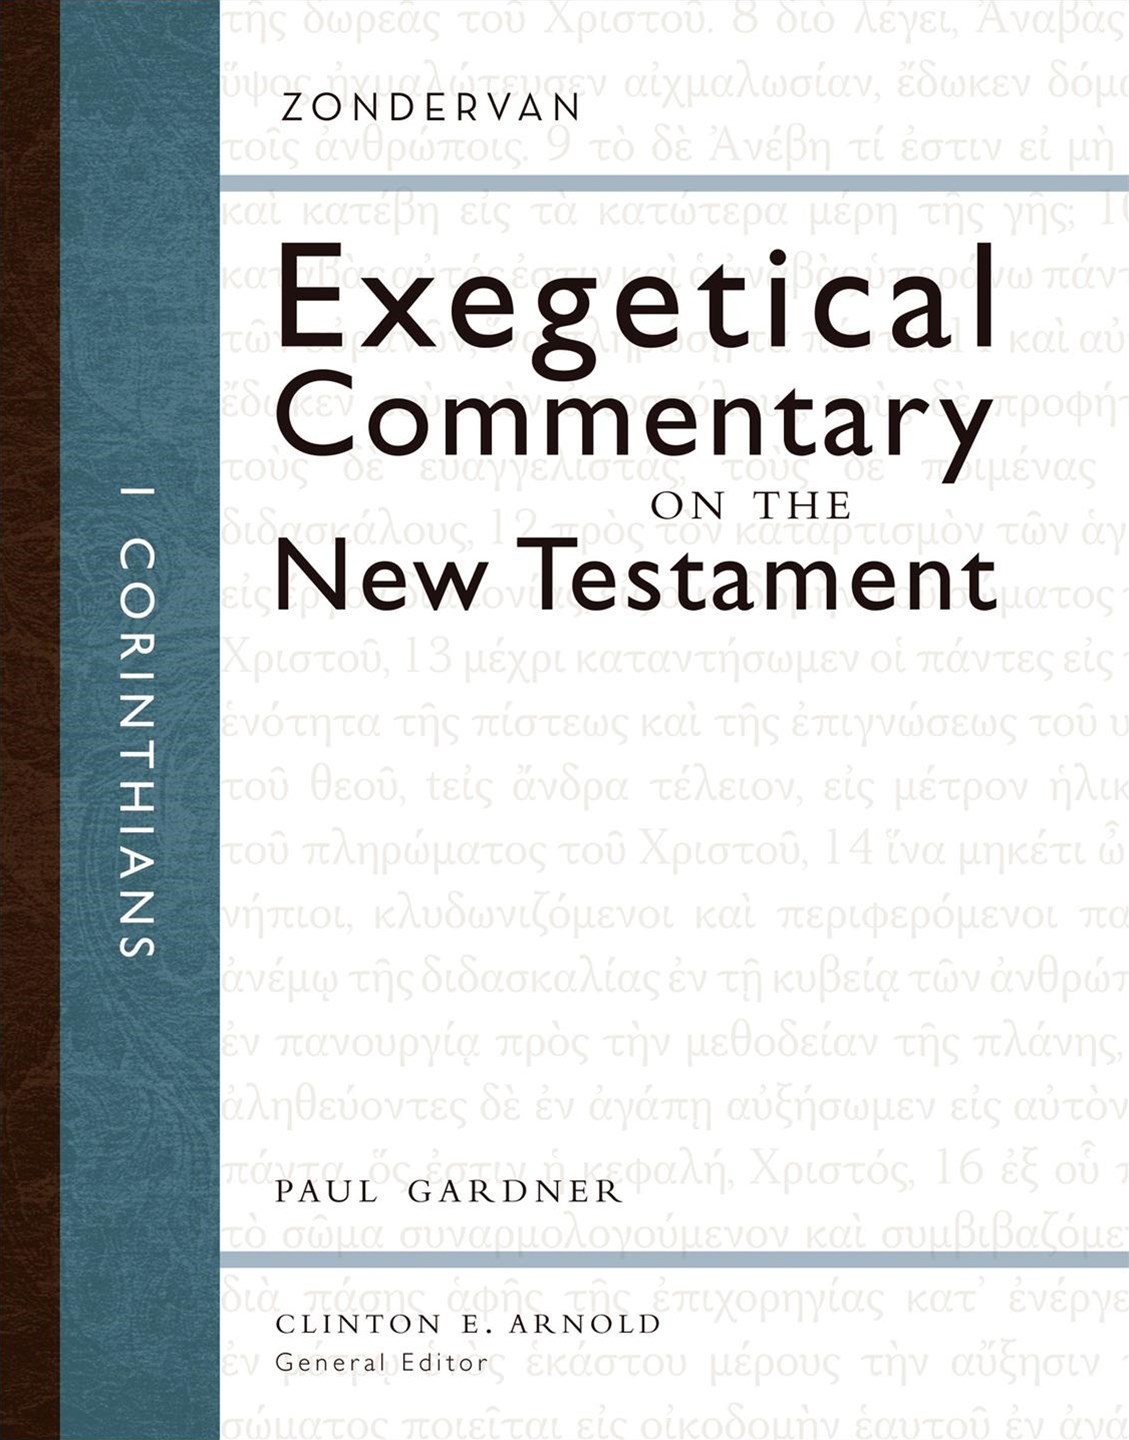 Exegetical Commentary On The New Testament: 1 Corinthians